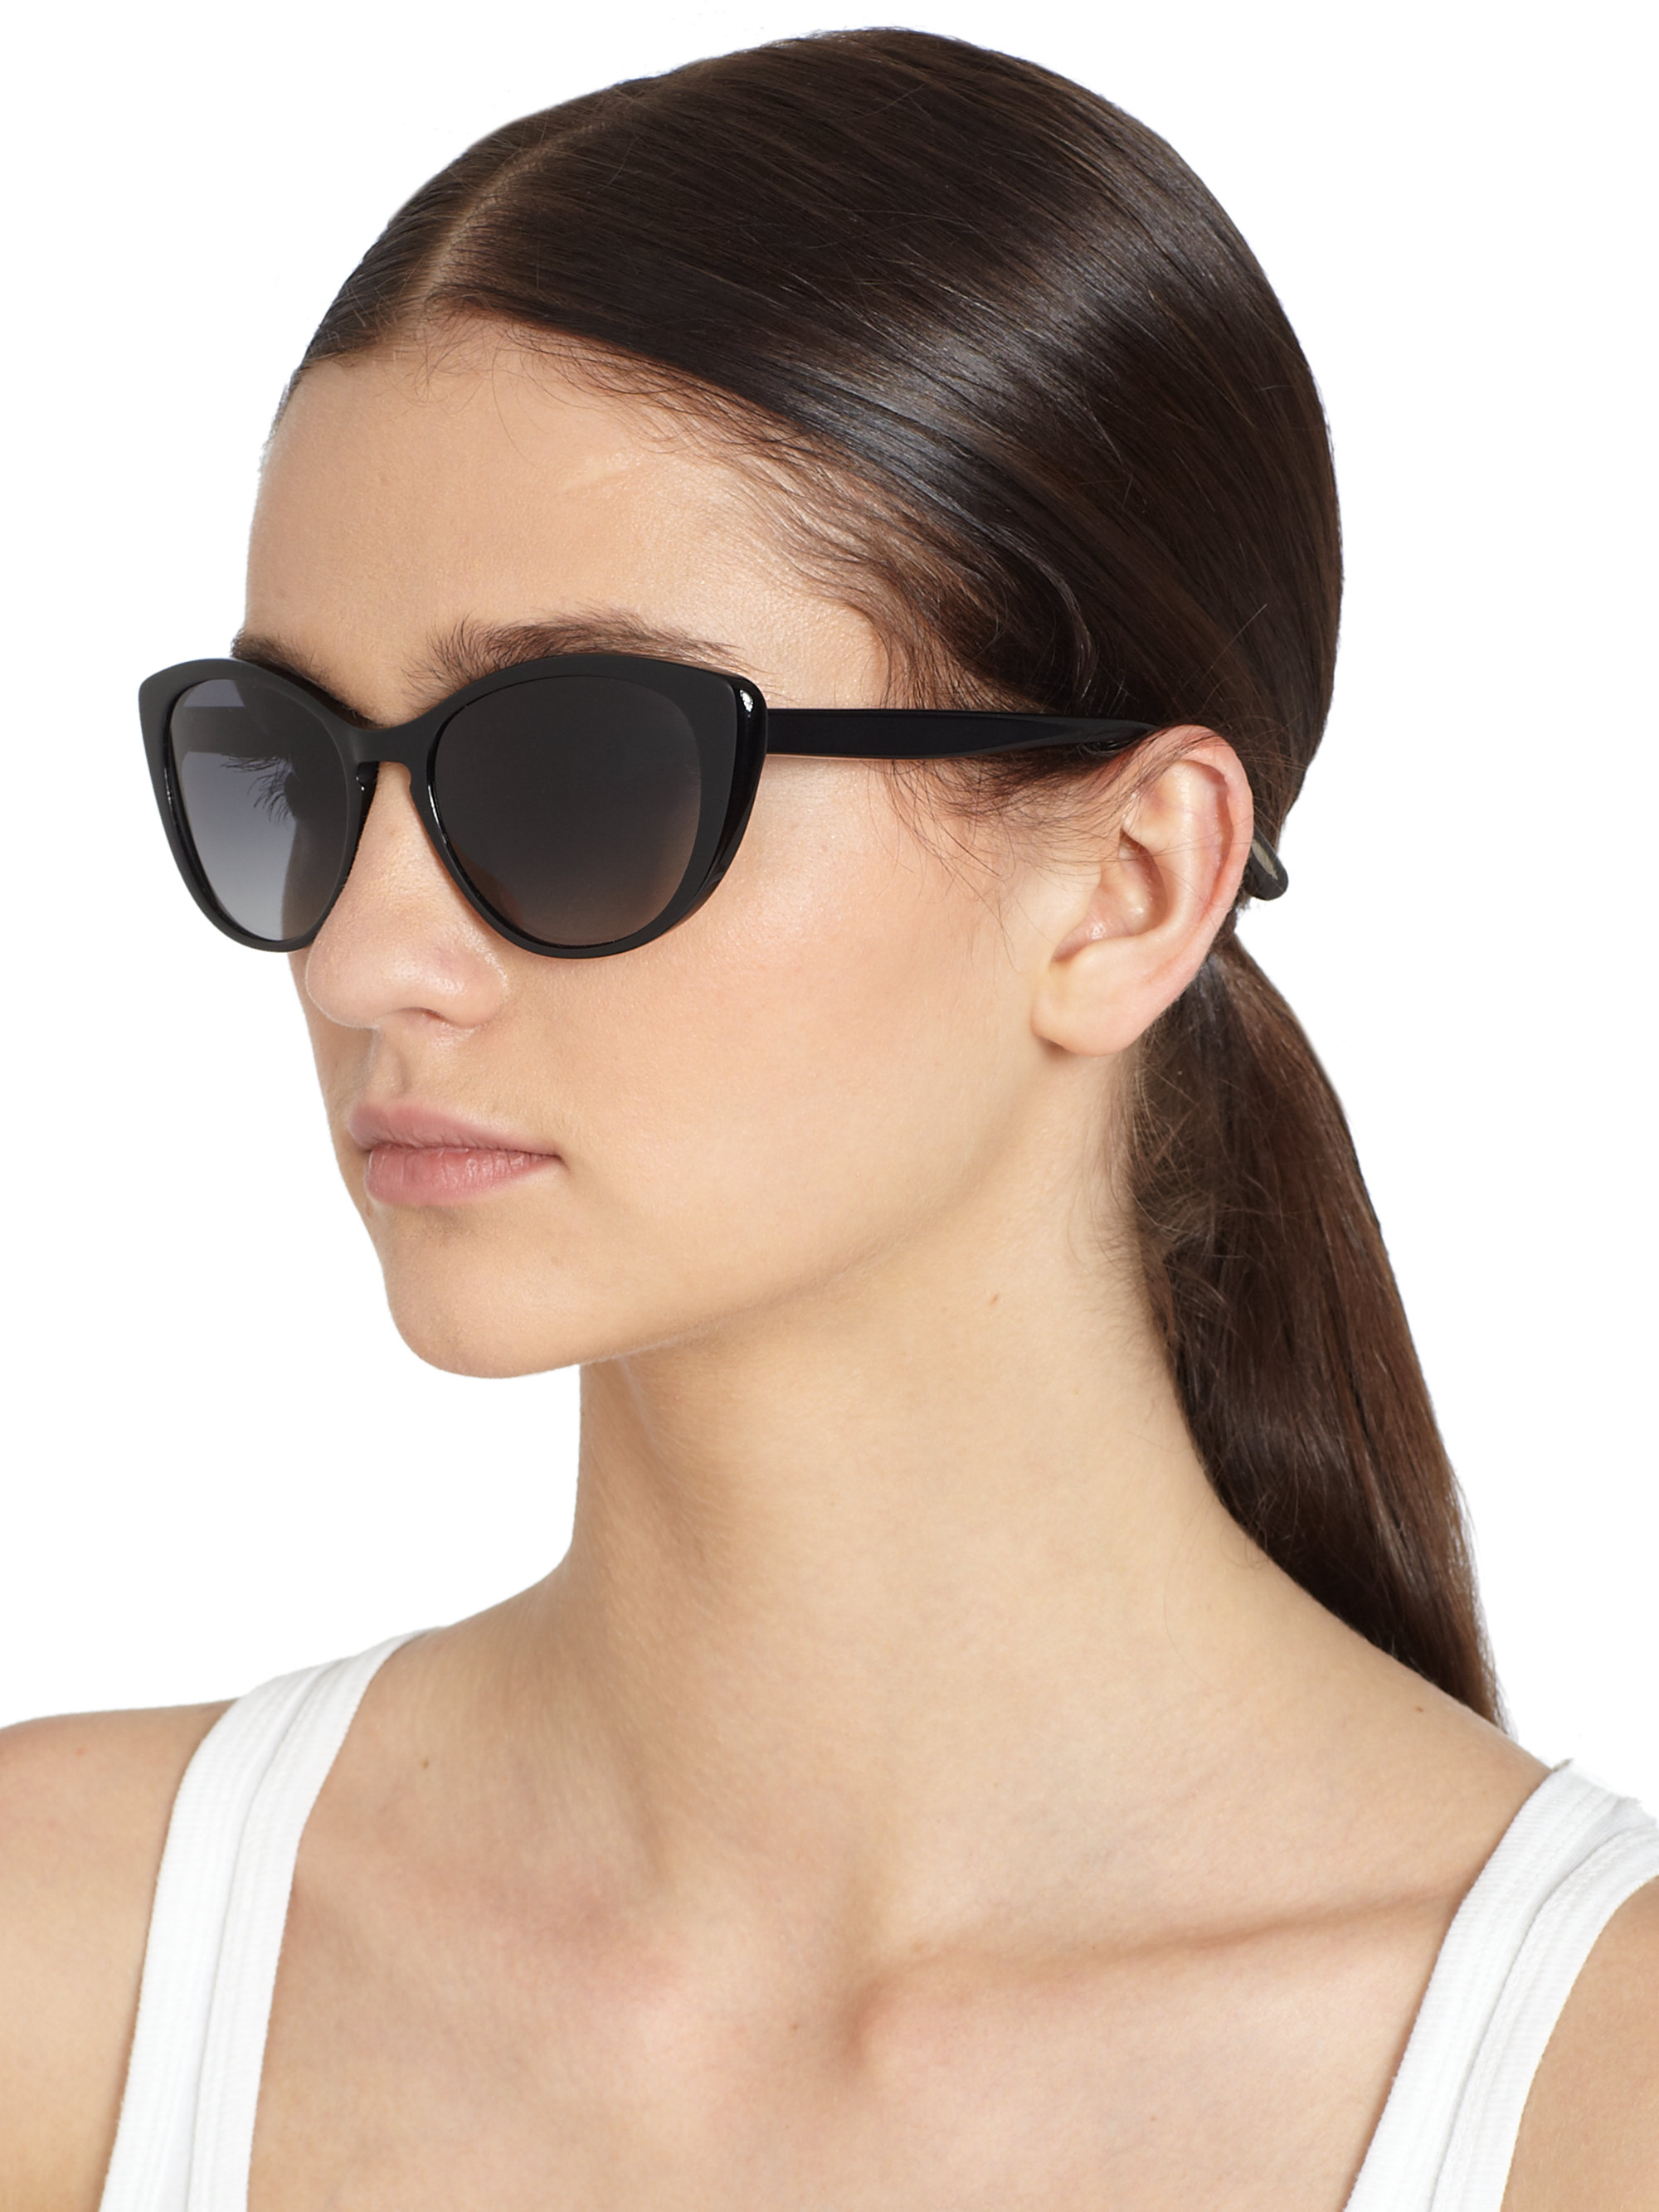 Sale Shop For For Cheap Oliver Peoples polarized cat eye sunglasses Authentic Online Amazon Cheap Online X70GZO